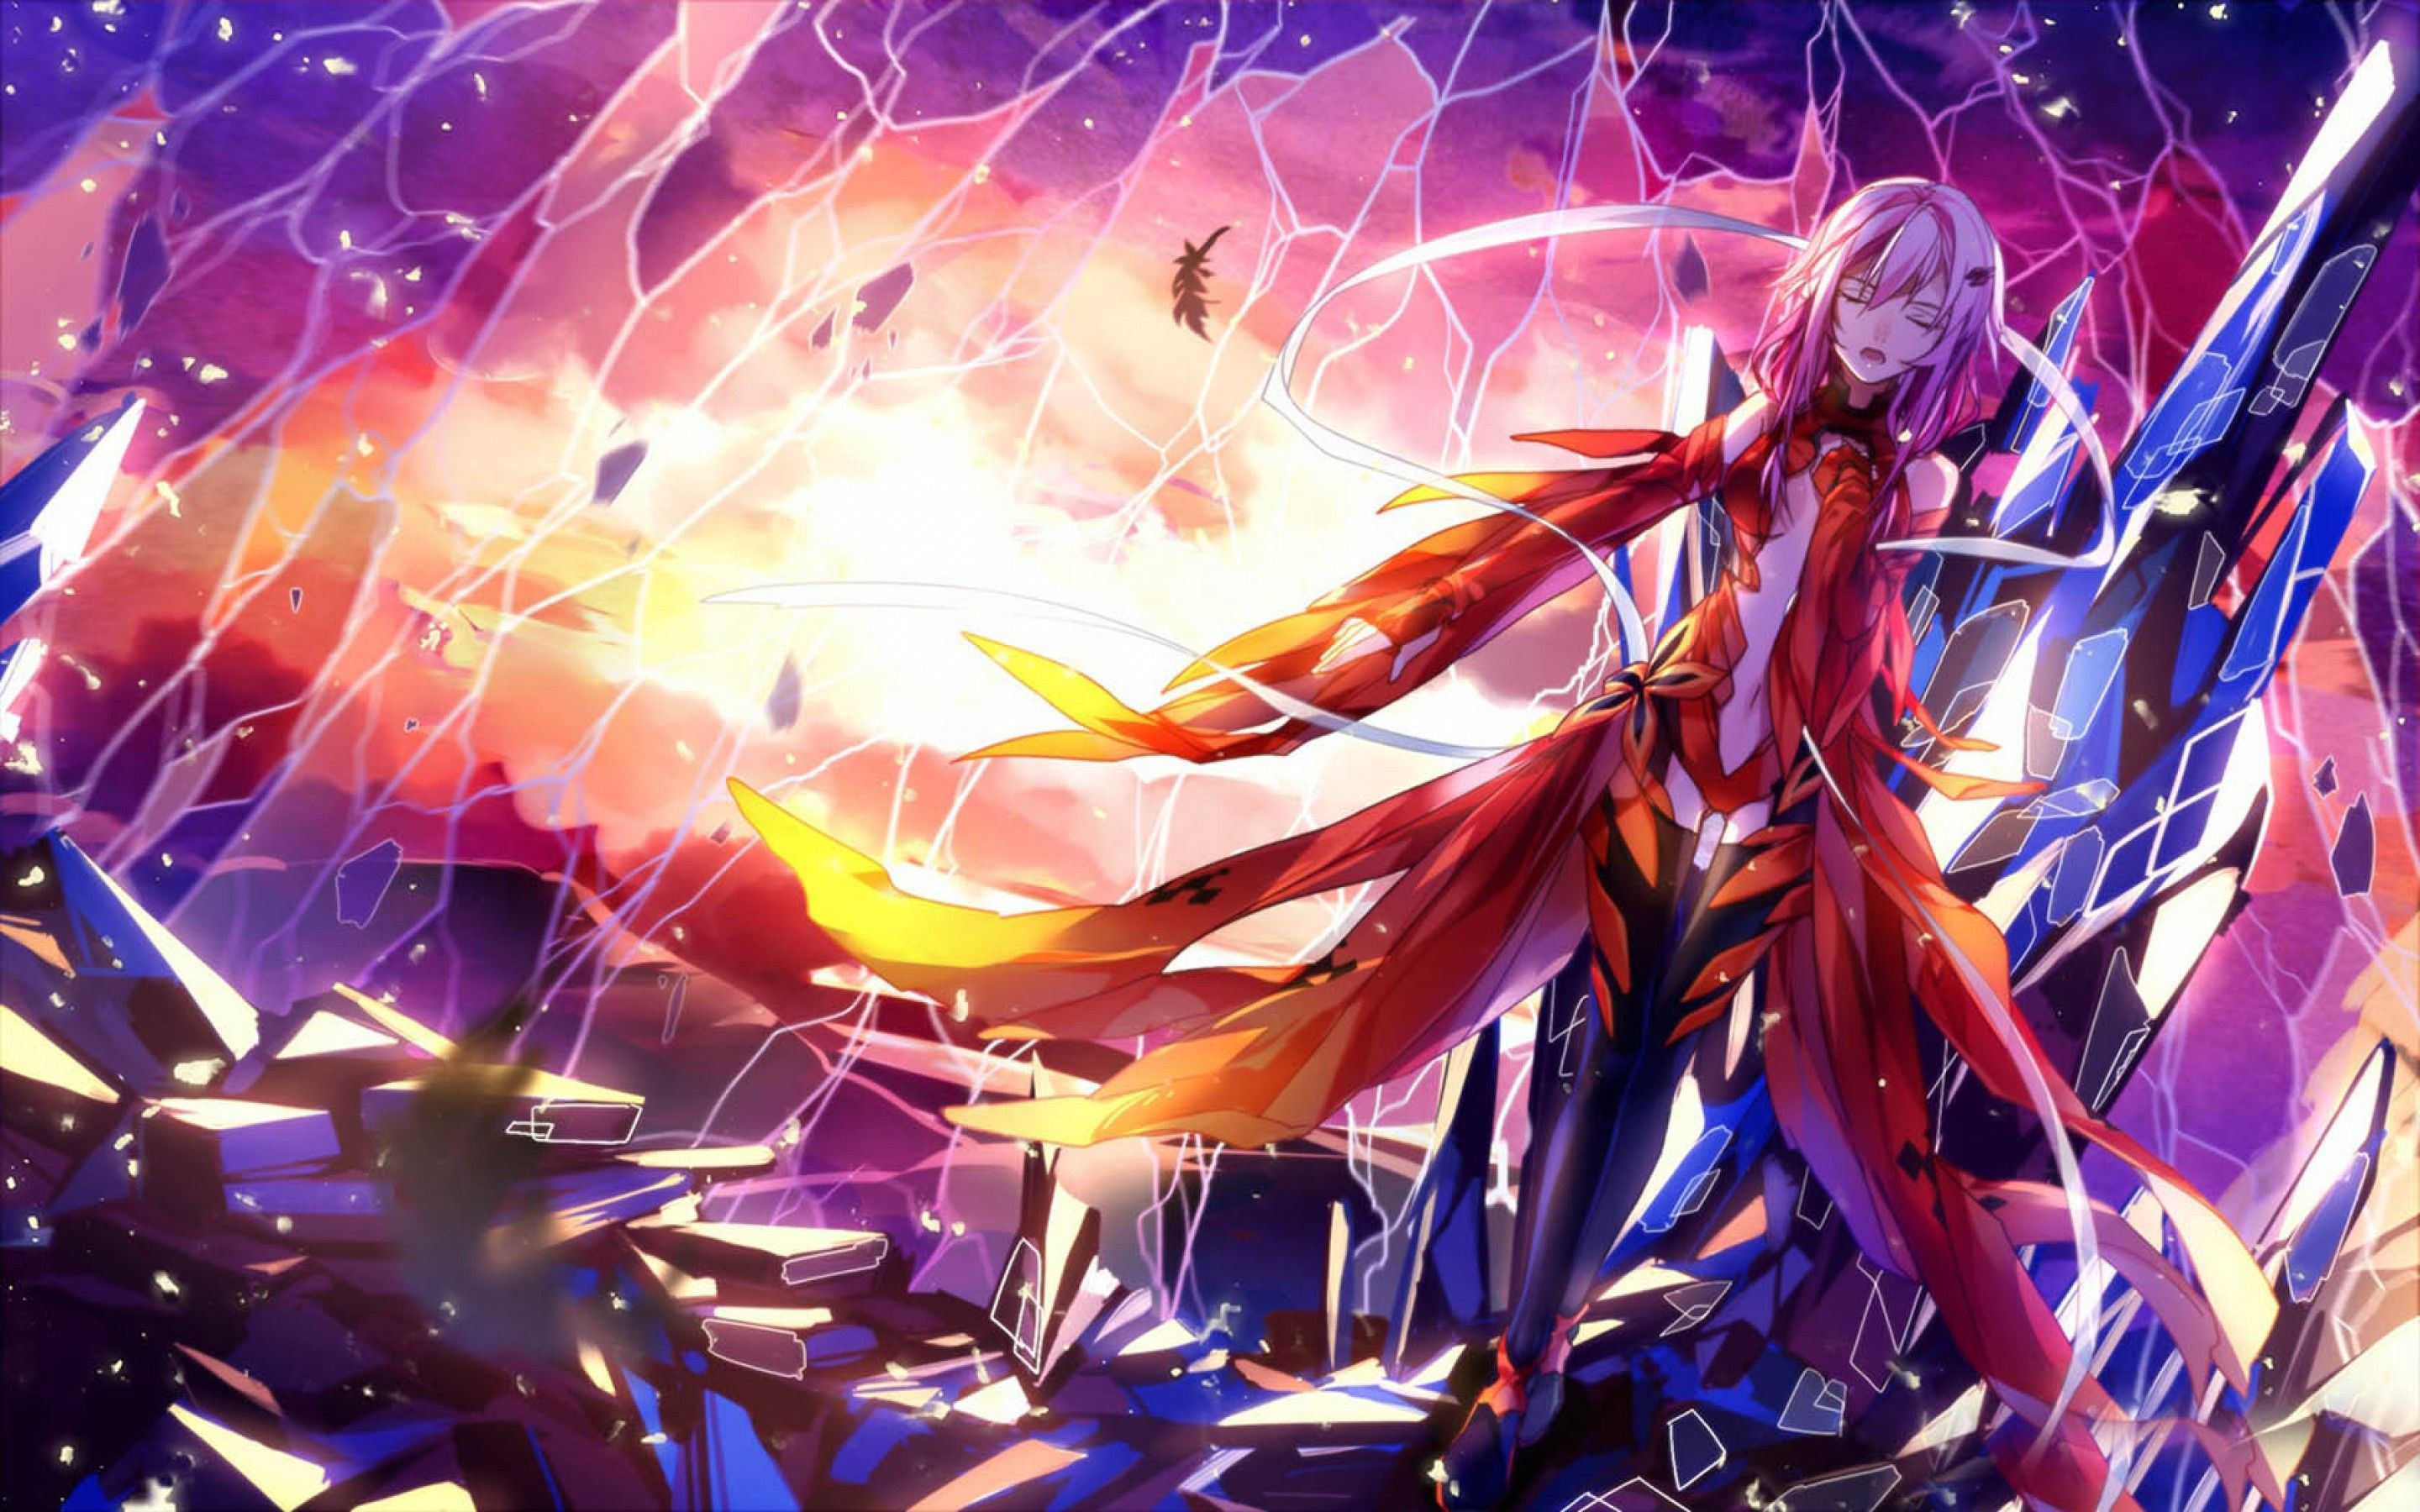 Internet Destroying Wallpaper Dump 12 000 Images Guilty Crown Wallpapers Anime Awesome Anime